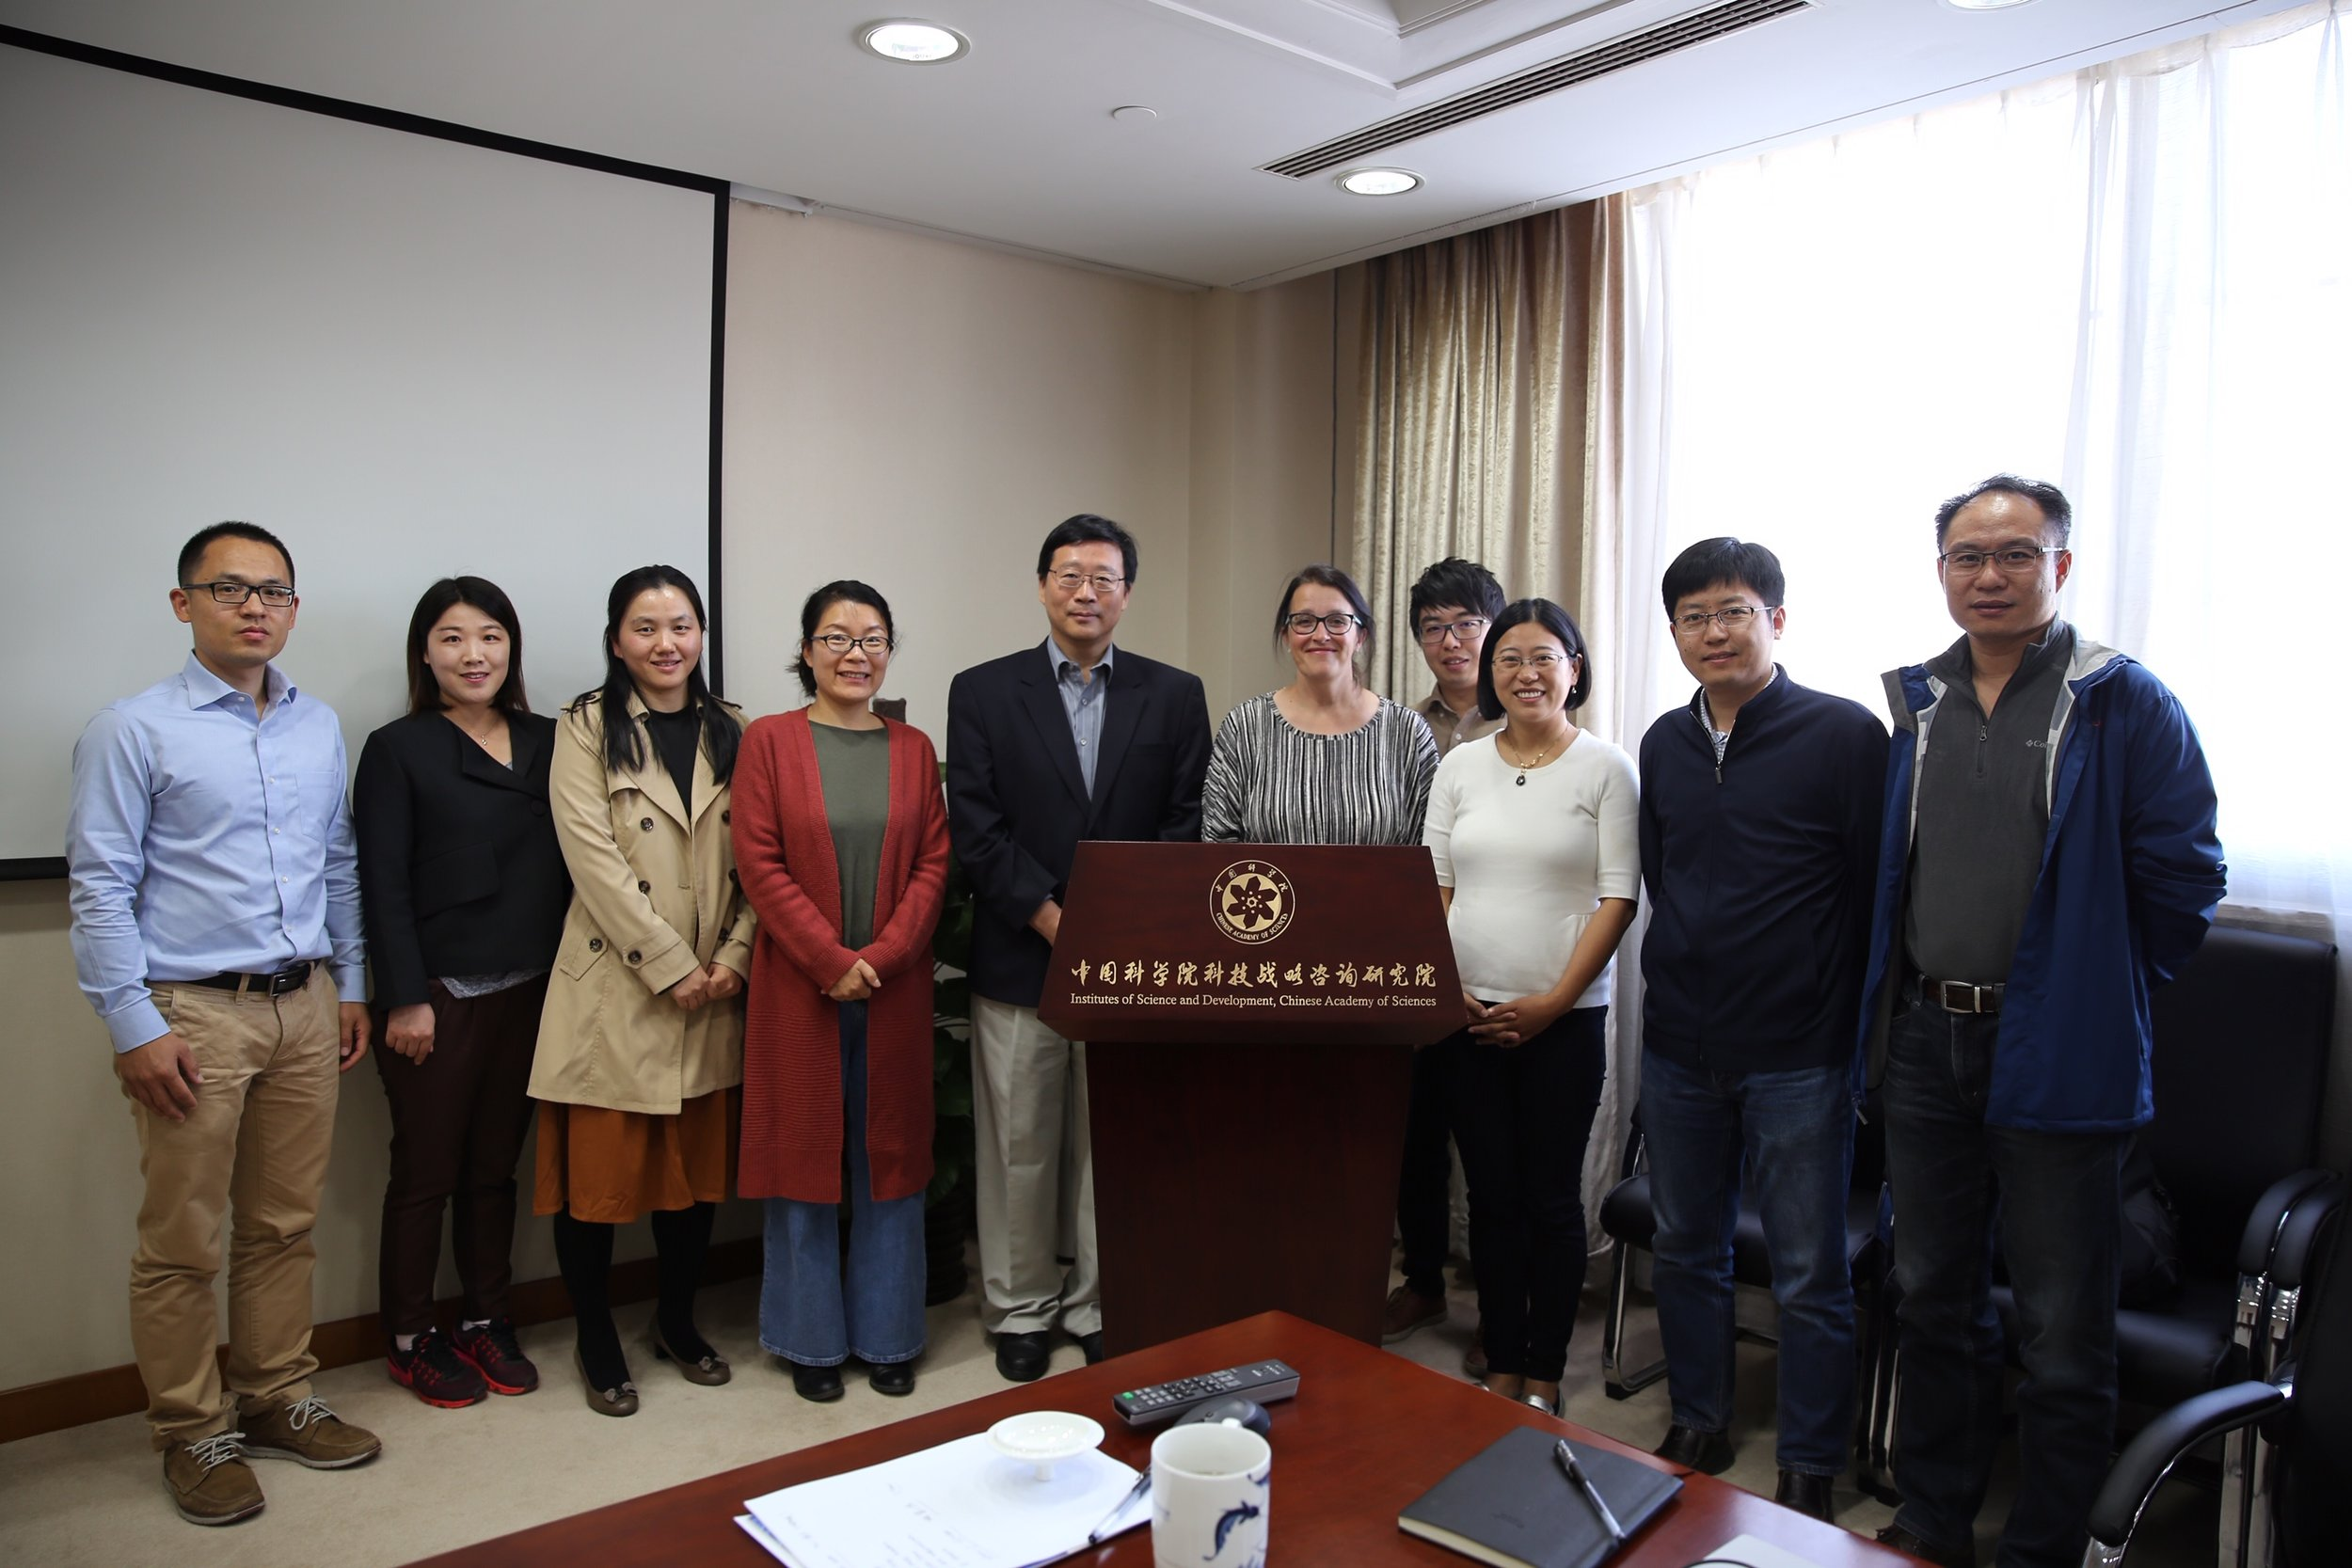 Professor Wang Yi and his team from the Chinese Academy of Science, with whom the Climate Policy Lab is working on green finance policy.